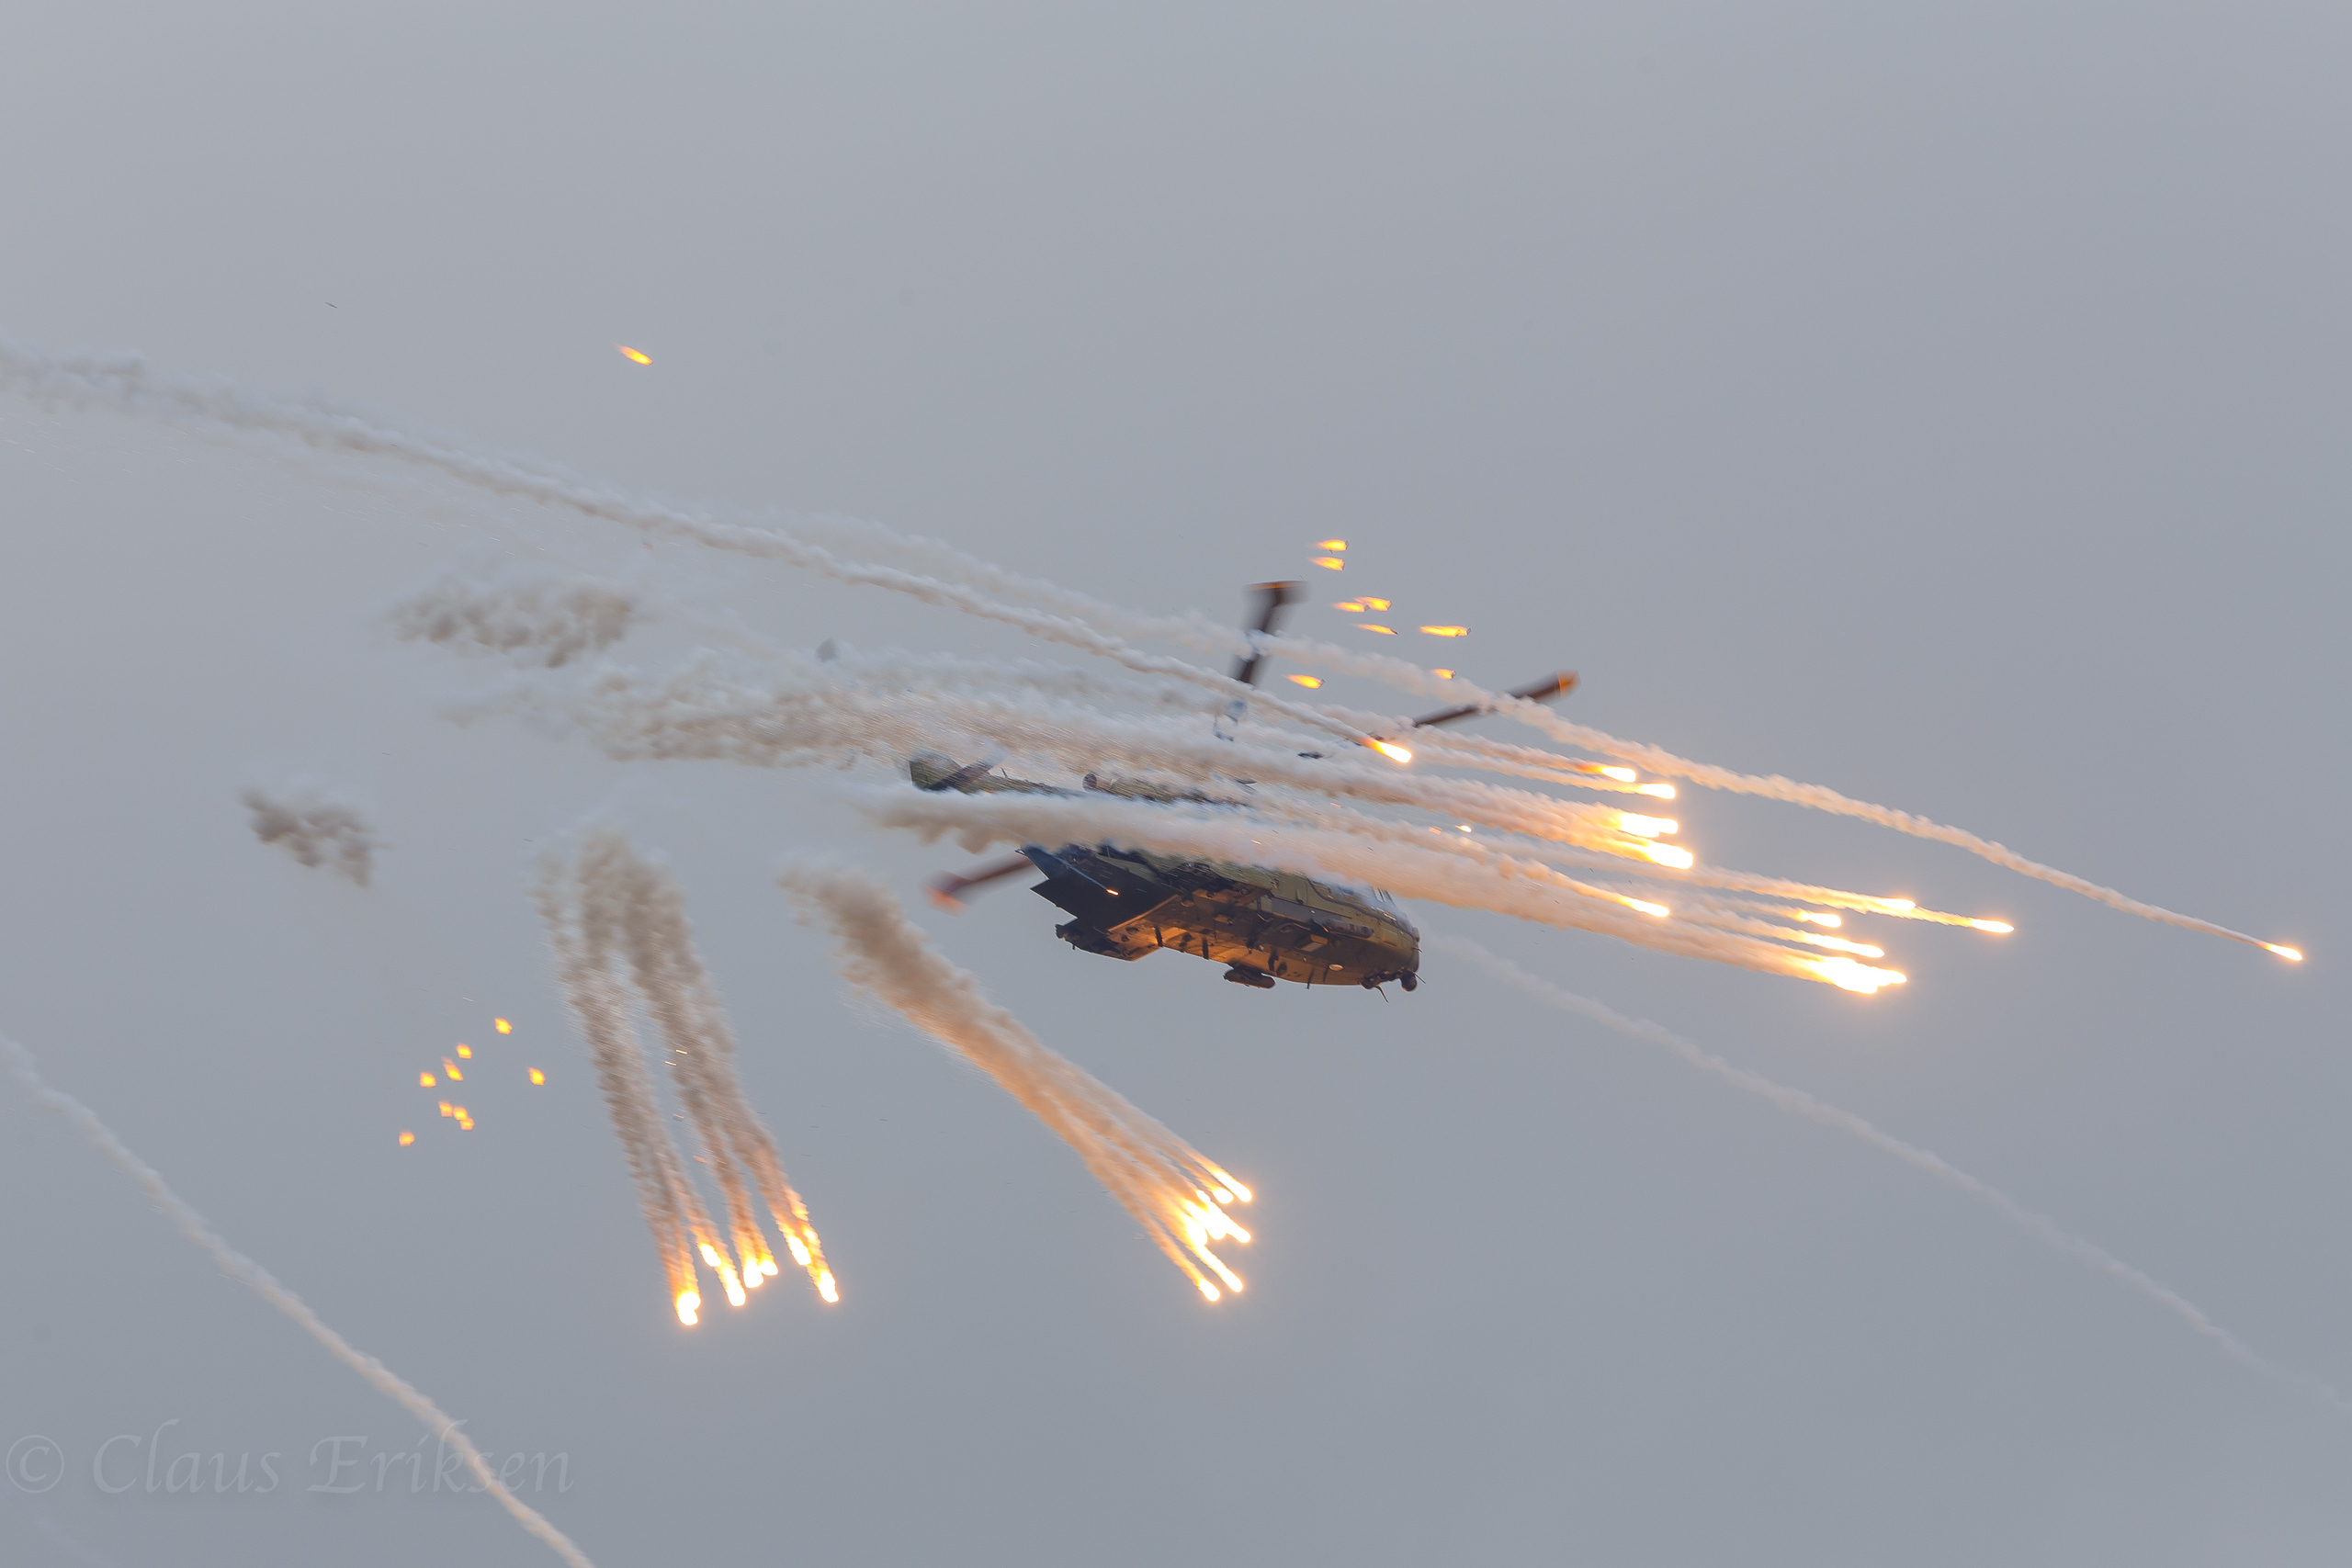 EH-101 dropping flares